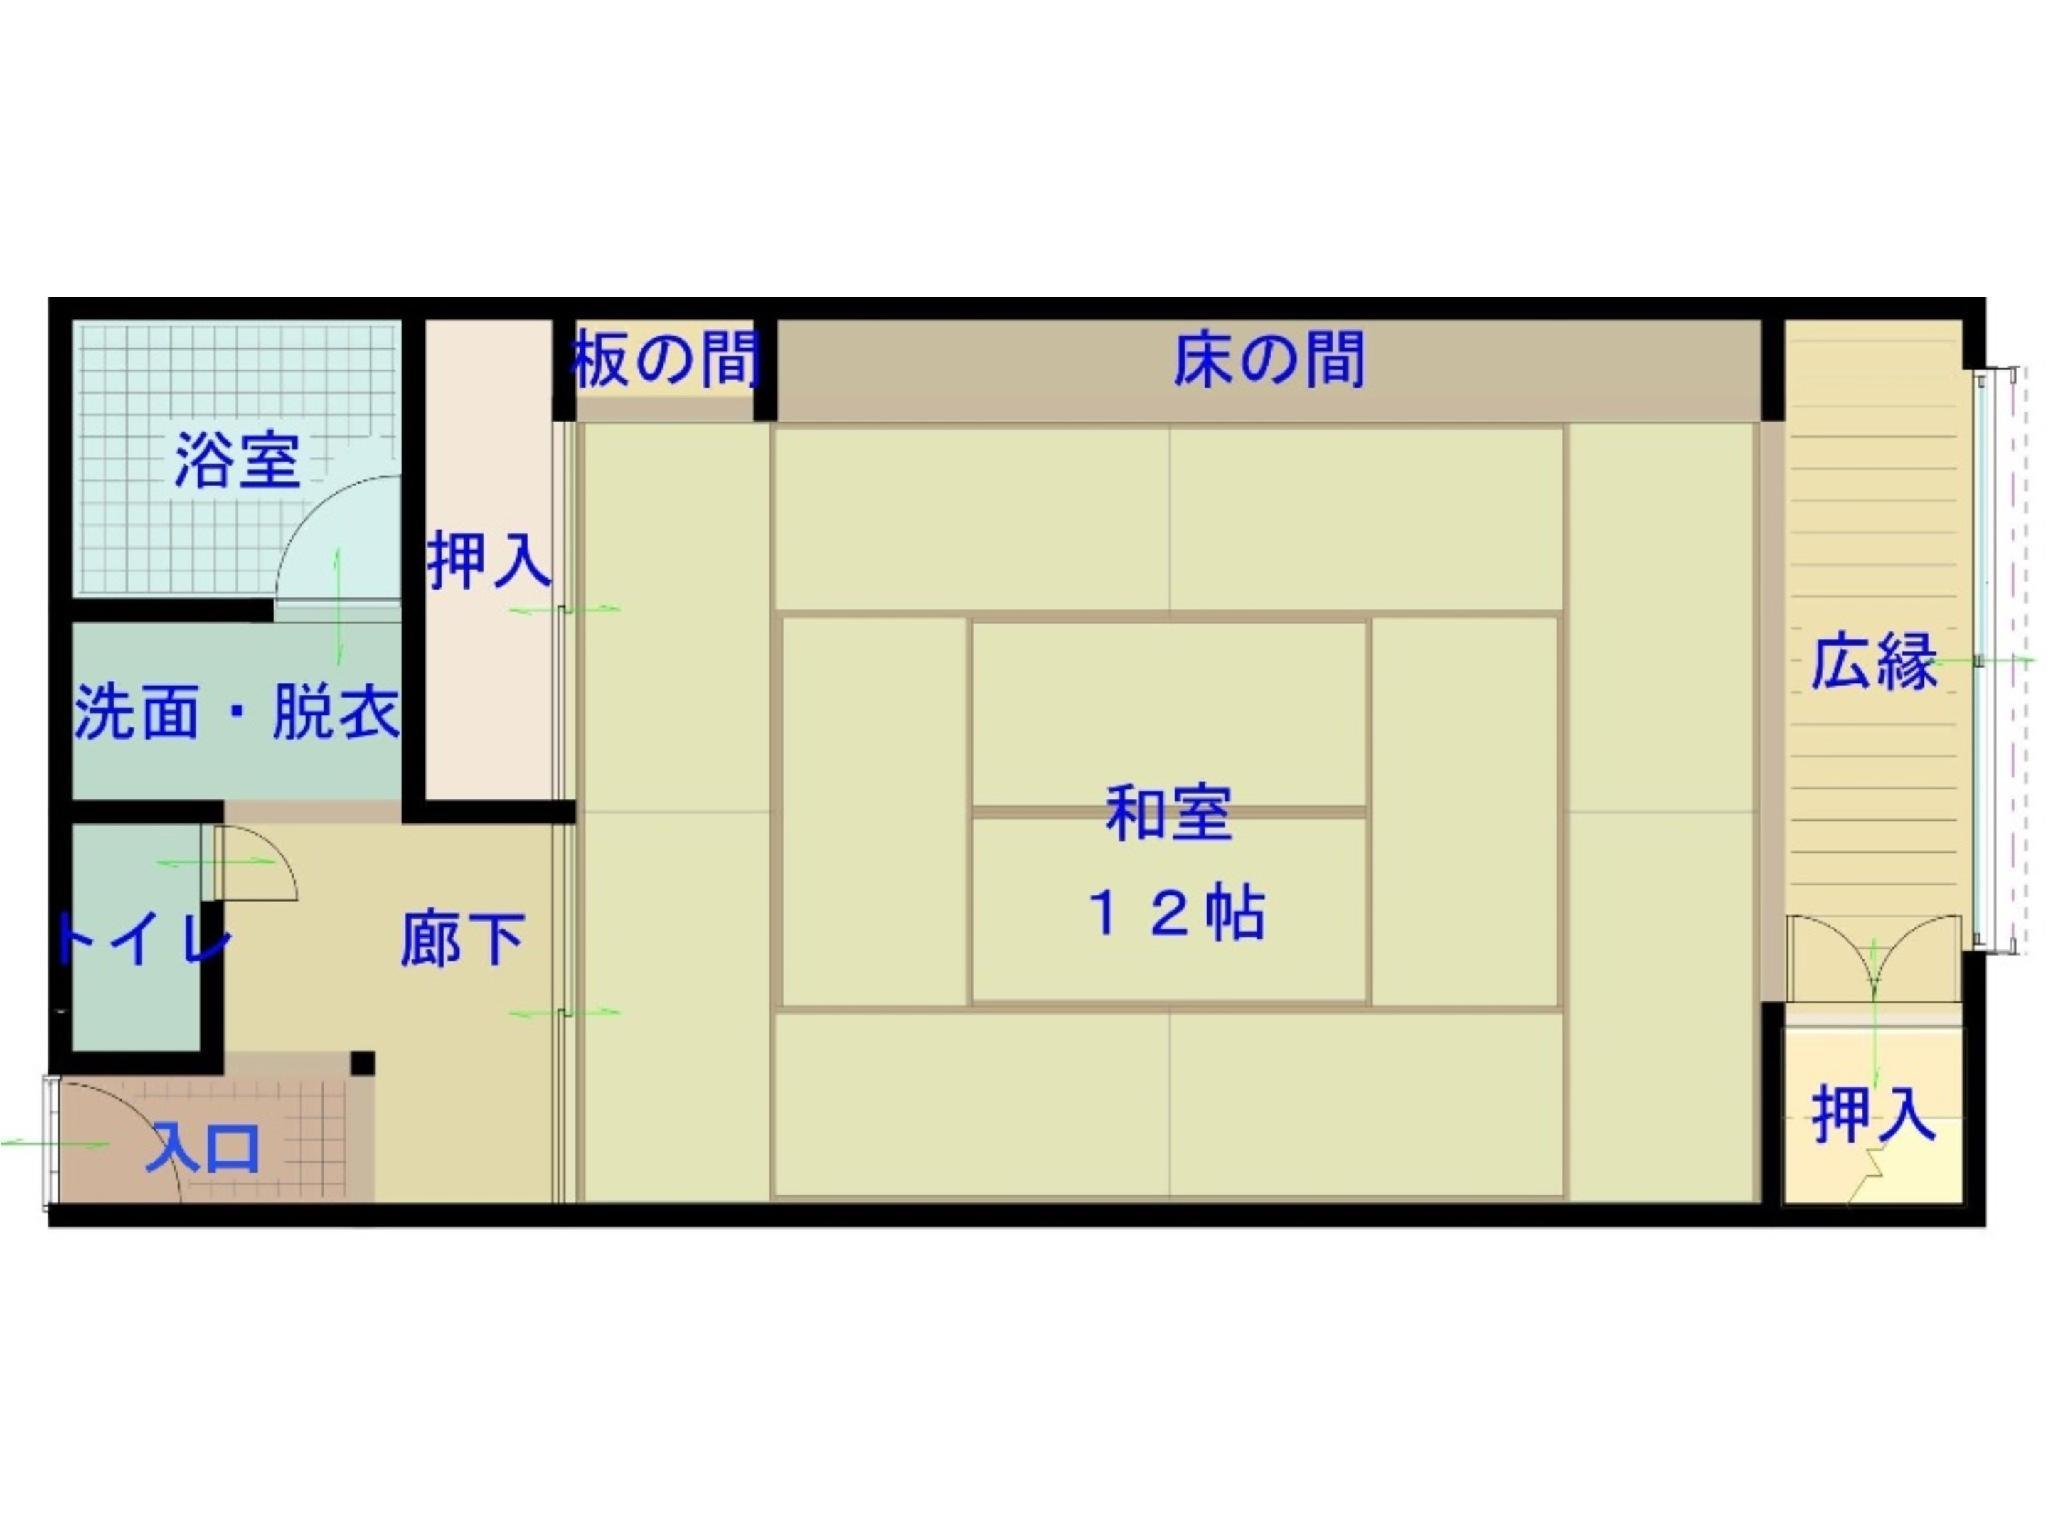 다다미 객실(본관) *2020년 4월부터 금연 (Japanese-style Room (Main Building) *Non-smoking from Apr. 2020)